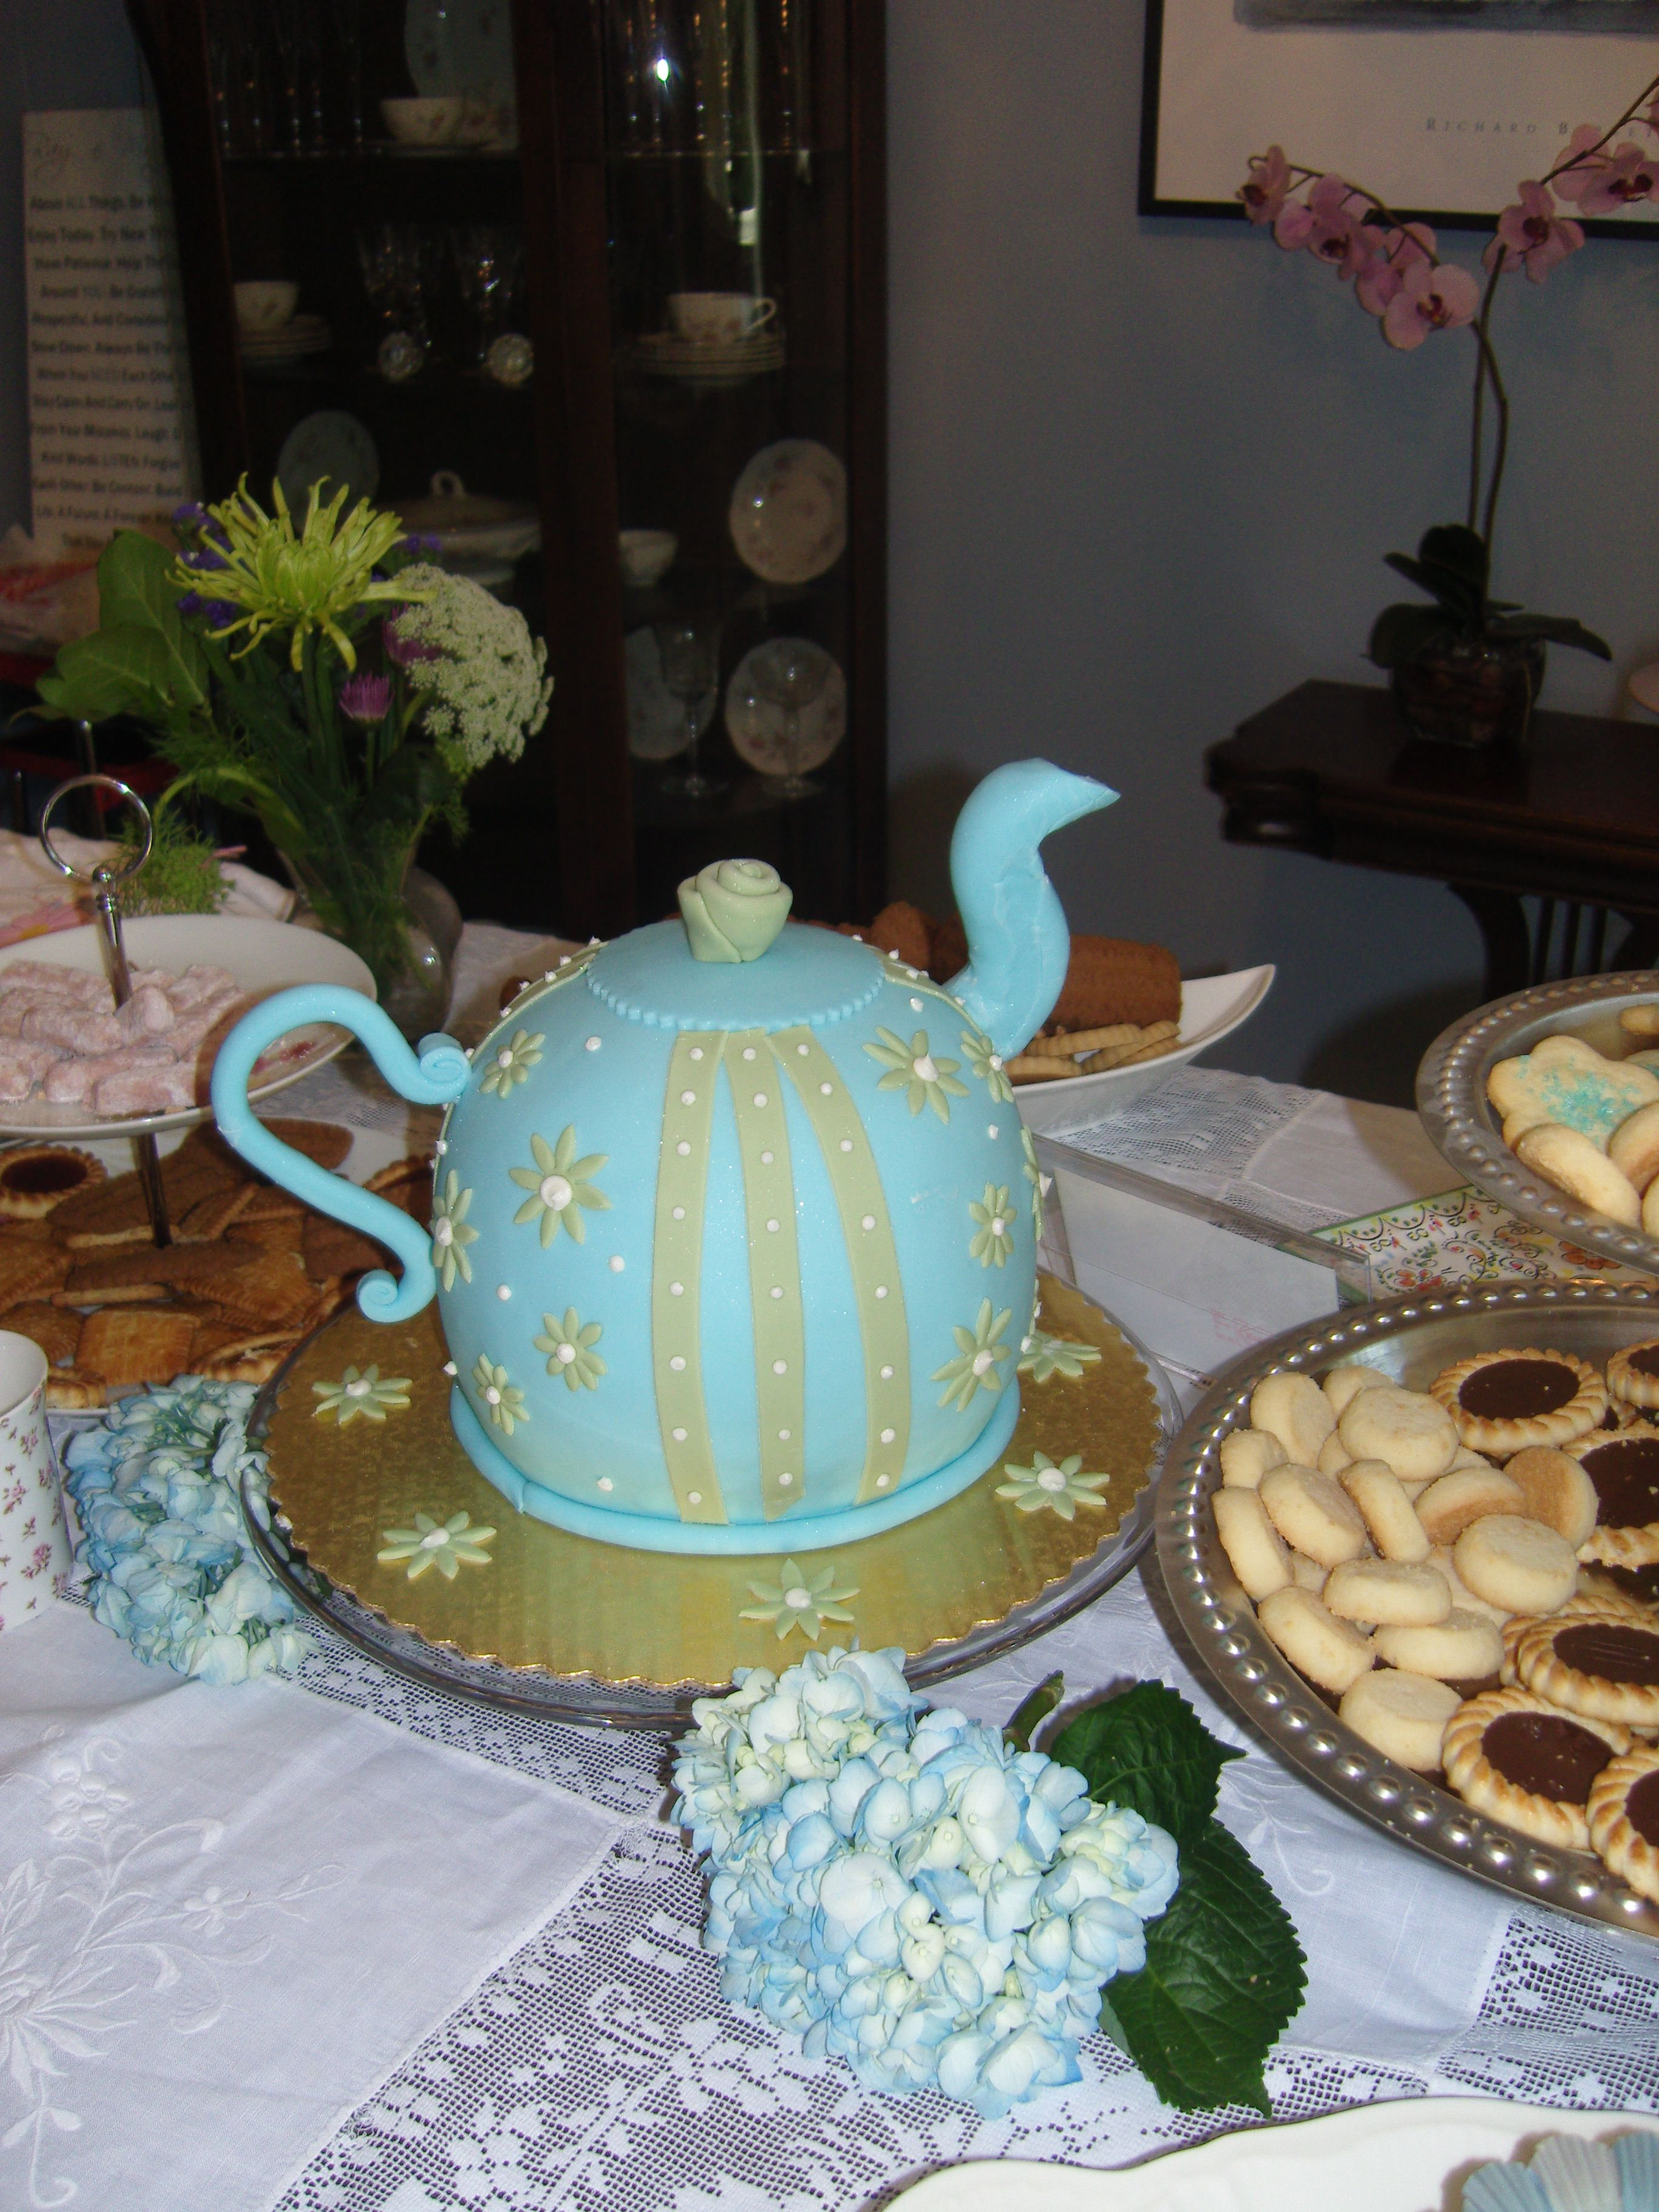 The cake from the Ladies Tea Party/Baby shower I threw